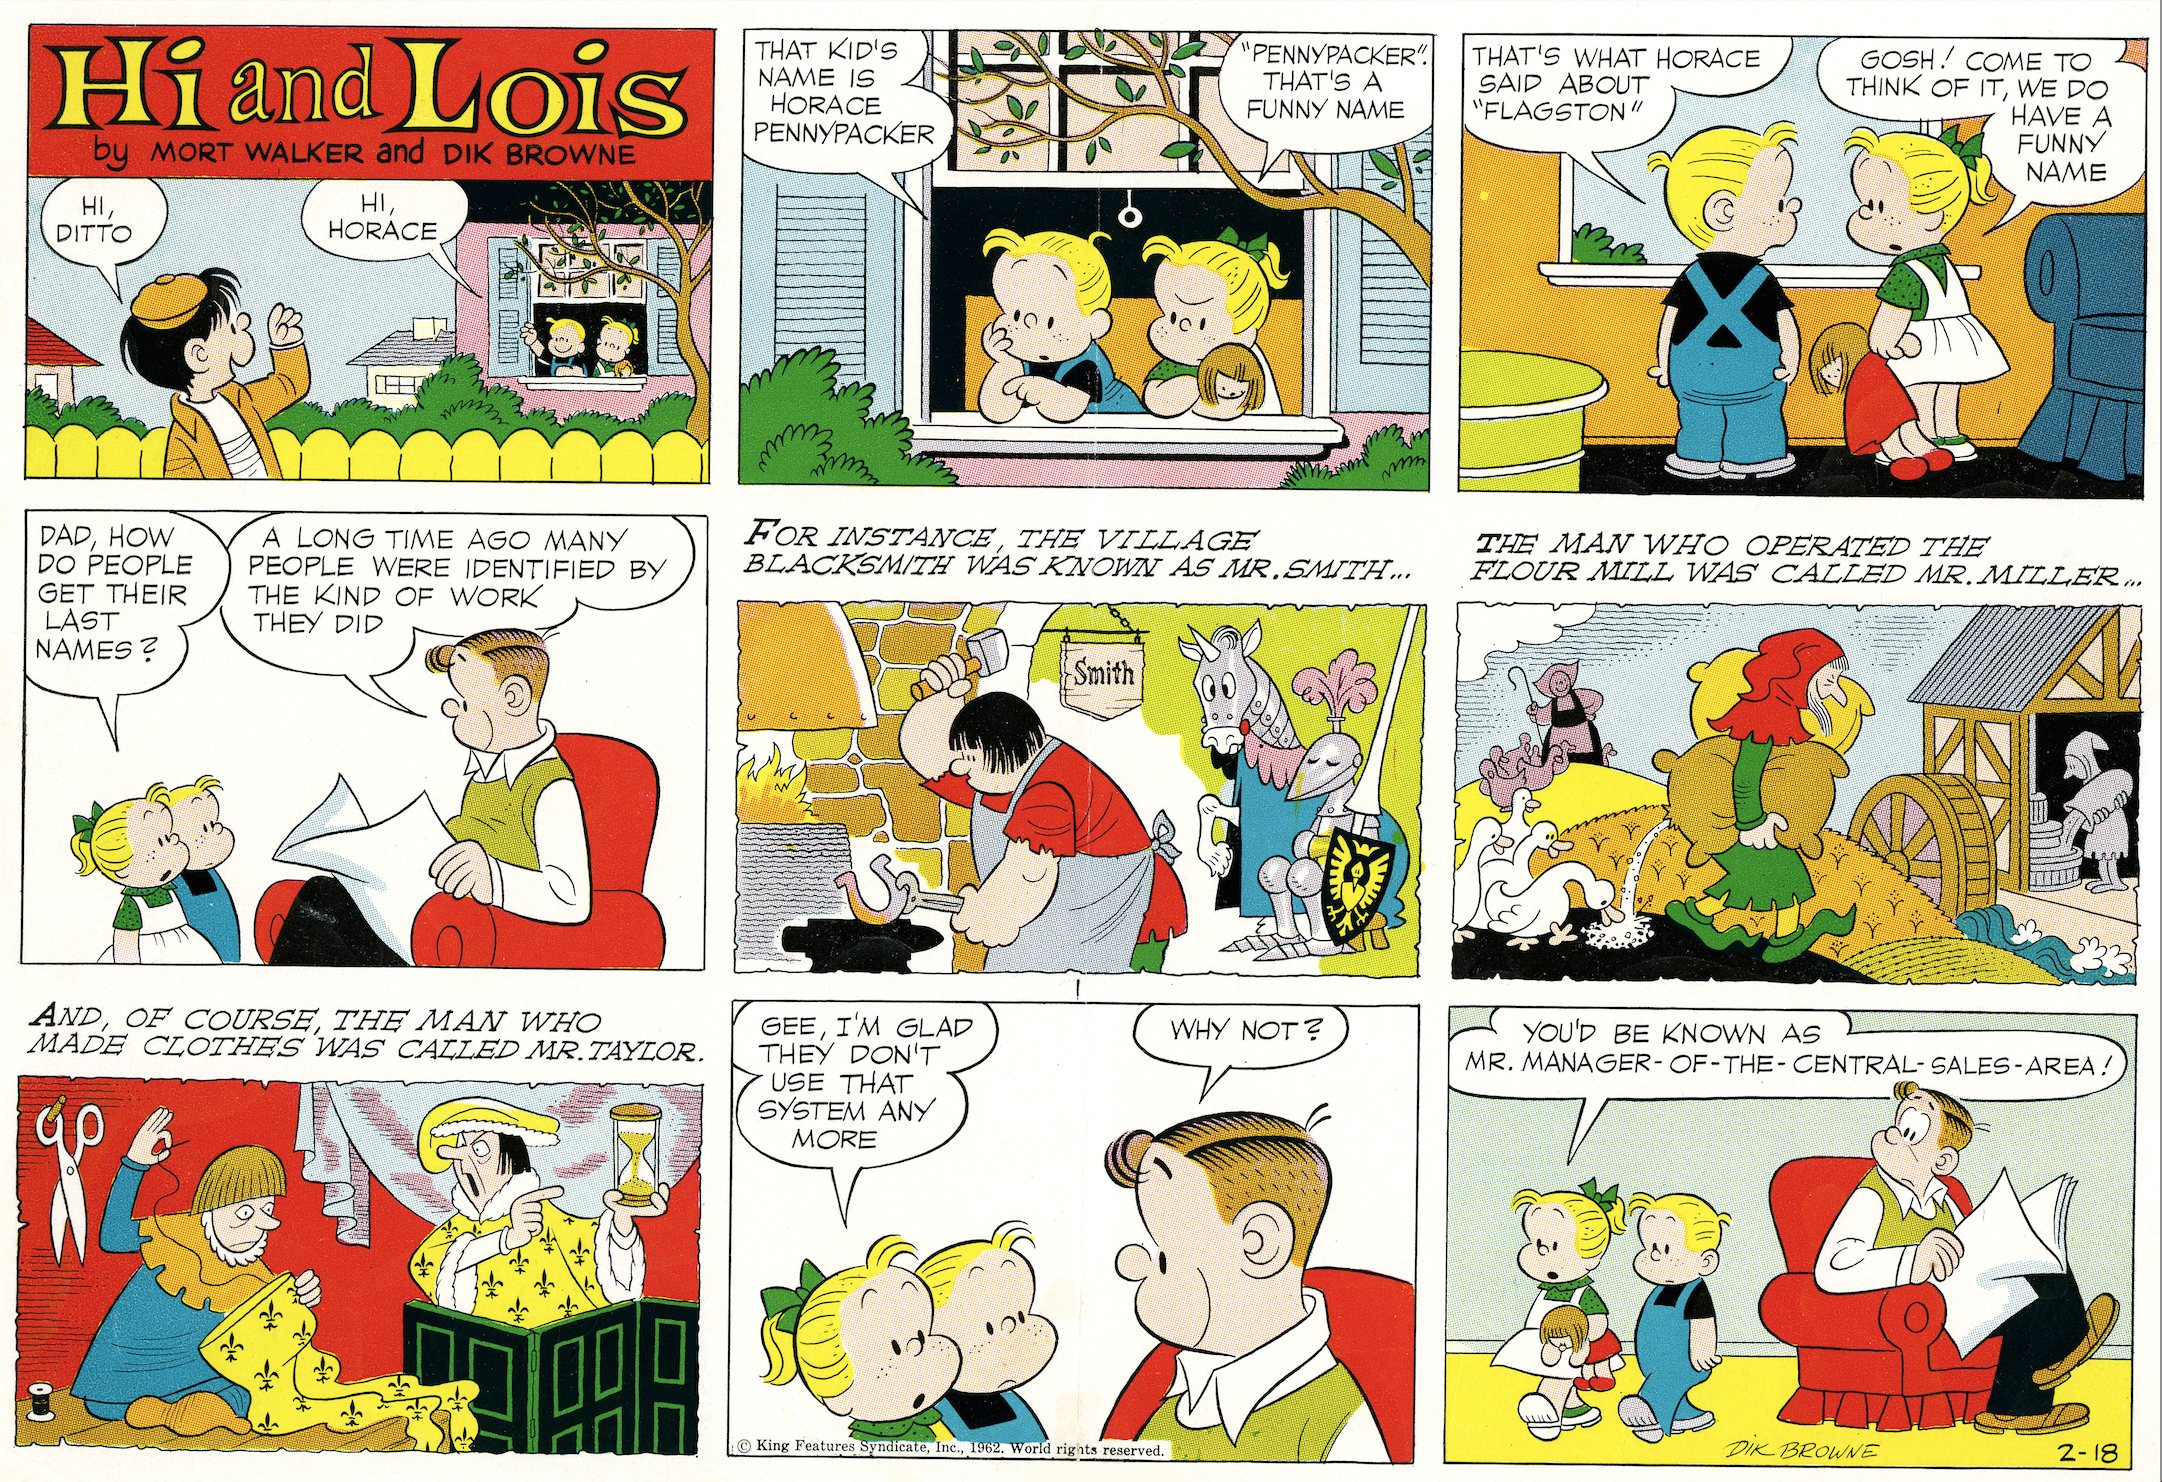 Hi and Lois Sunday page color proof, February 8, 1962.